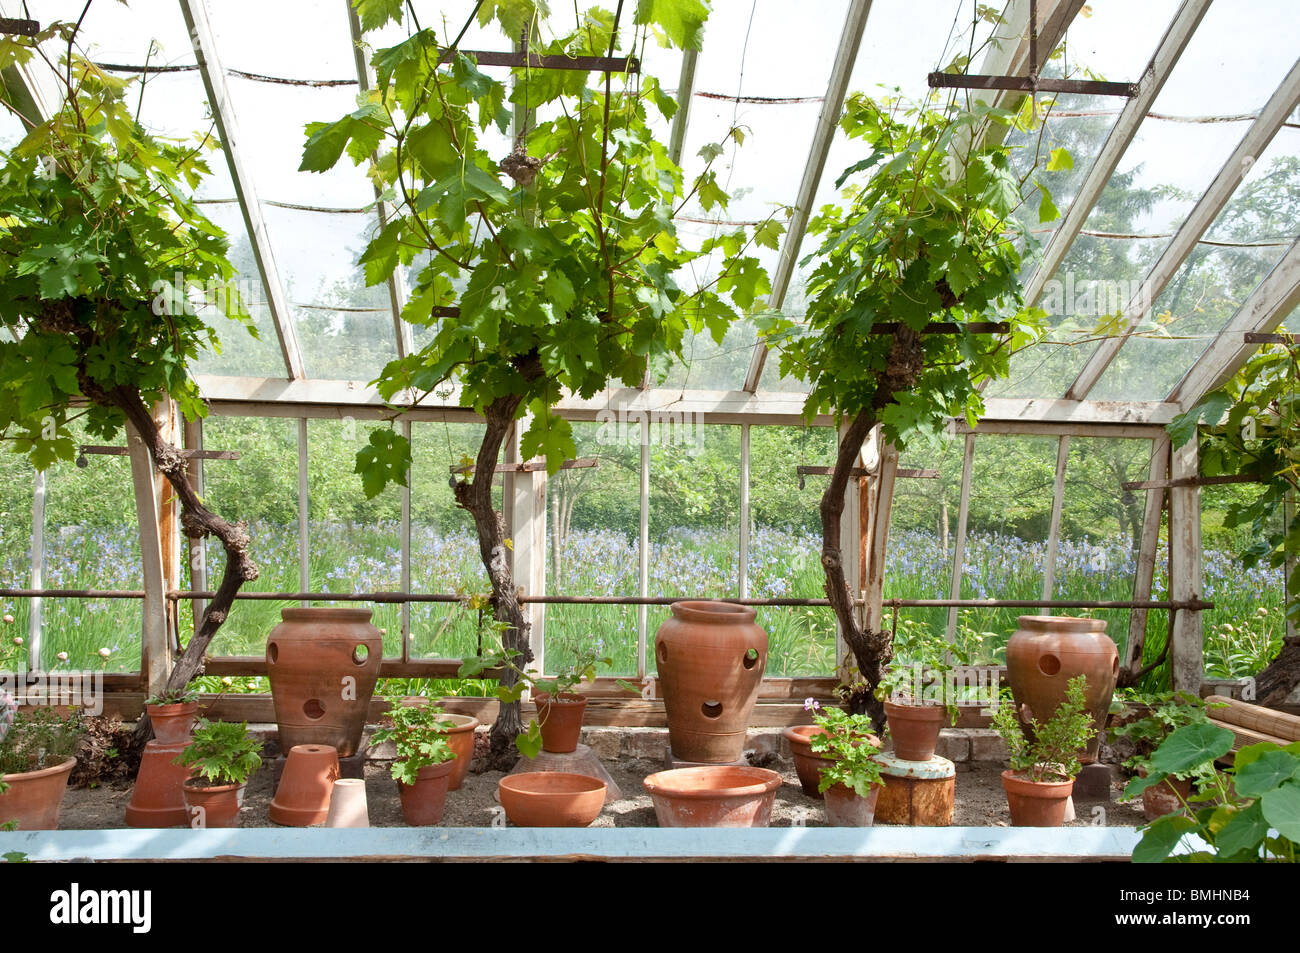 Vines And Terracotta Pots Inside The Greenhouse At Bryanu0027s Ground Garden,  Stapleton, Herefordshire